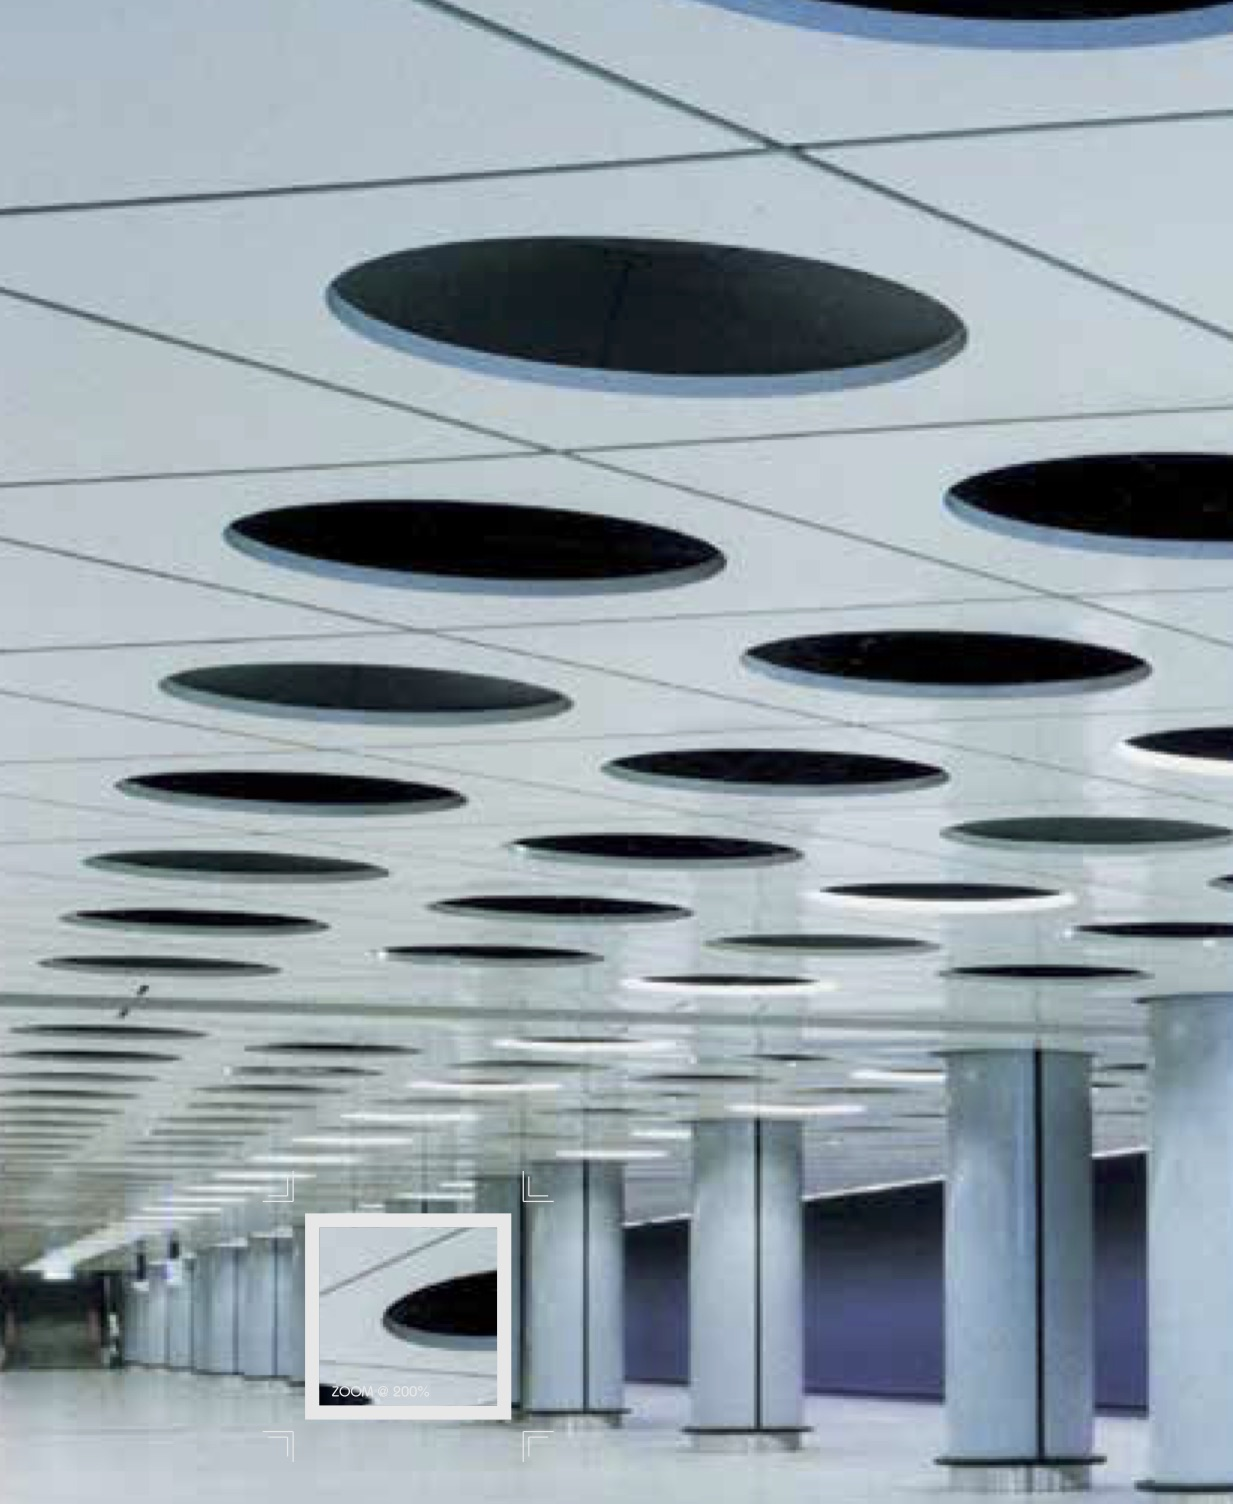 Metal Ceilings, Finishing, Construction Material, Tile, Ceilings, Architecture